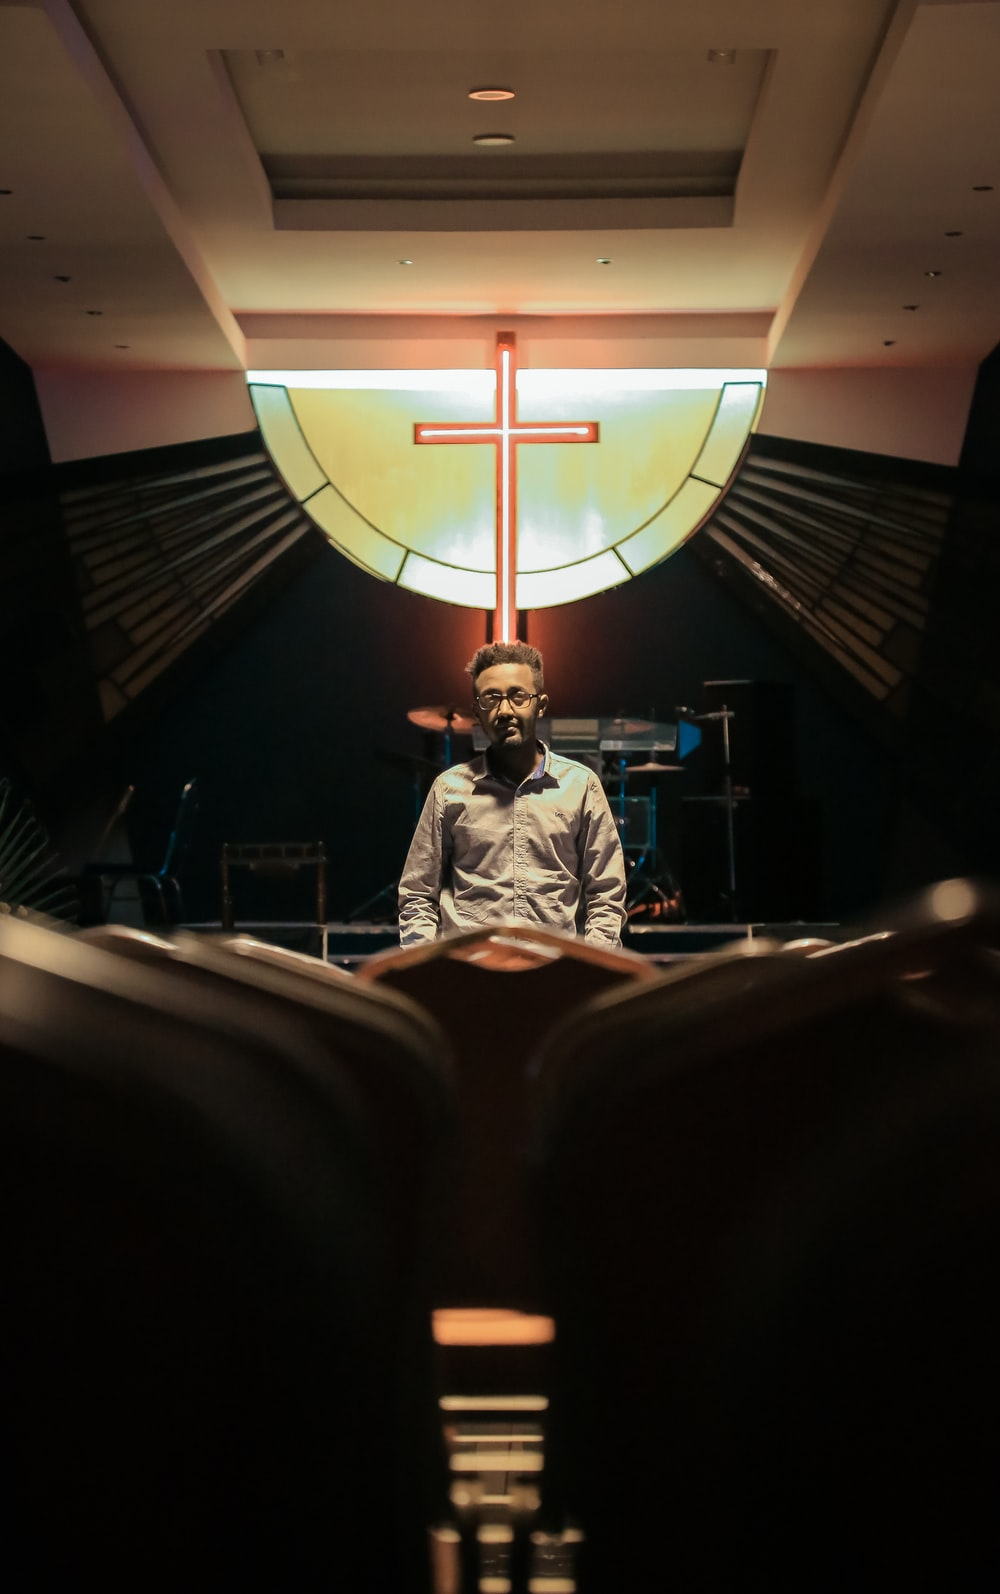 man standing inside church